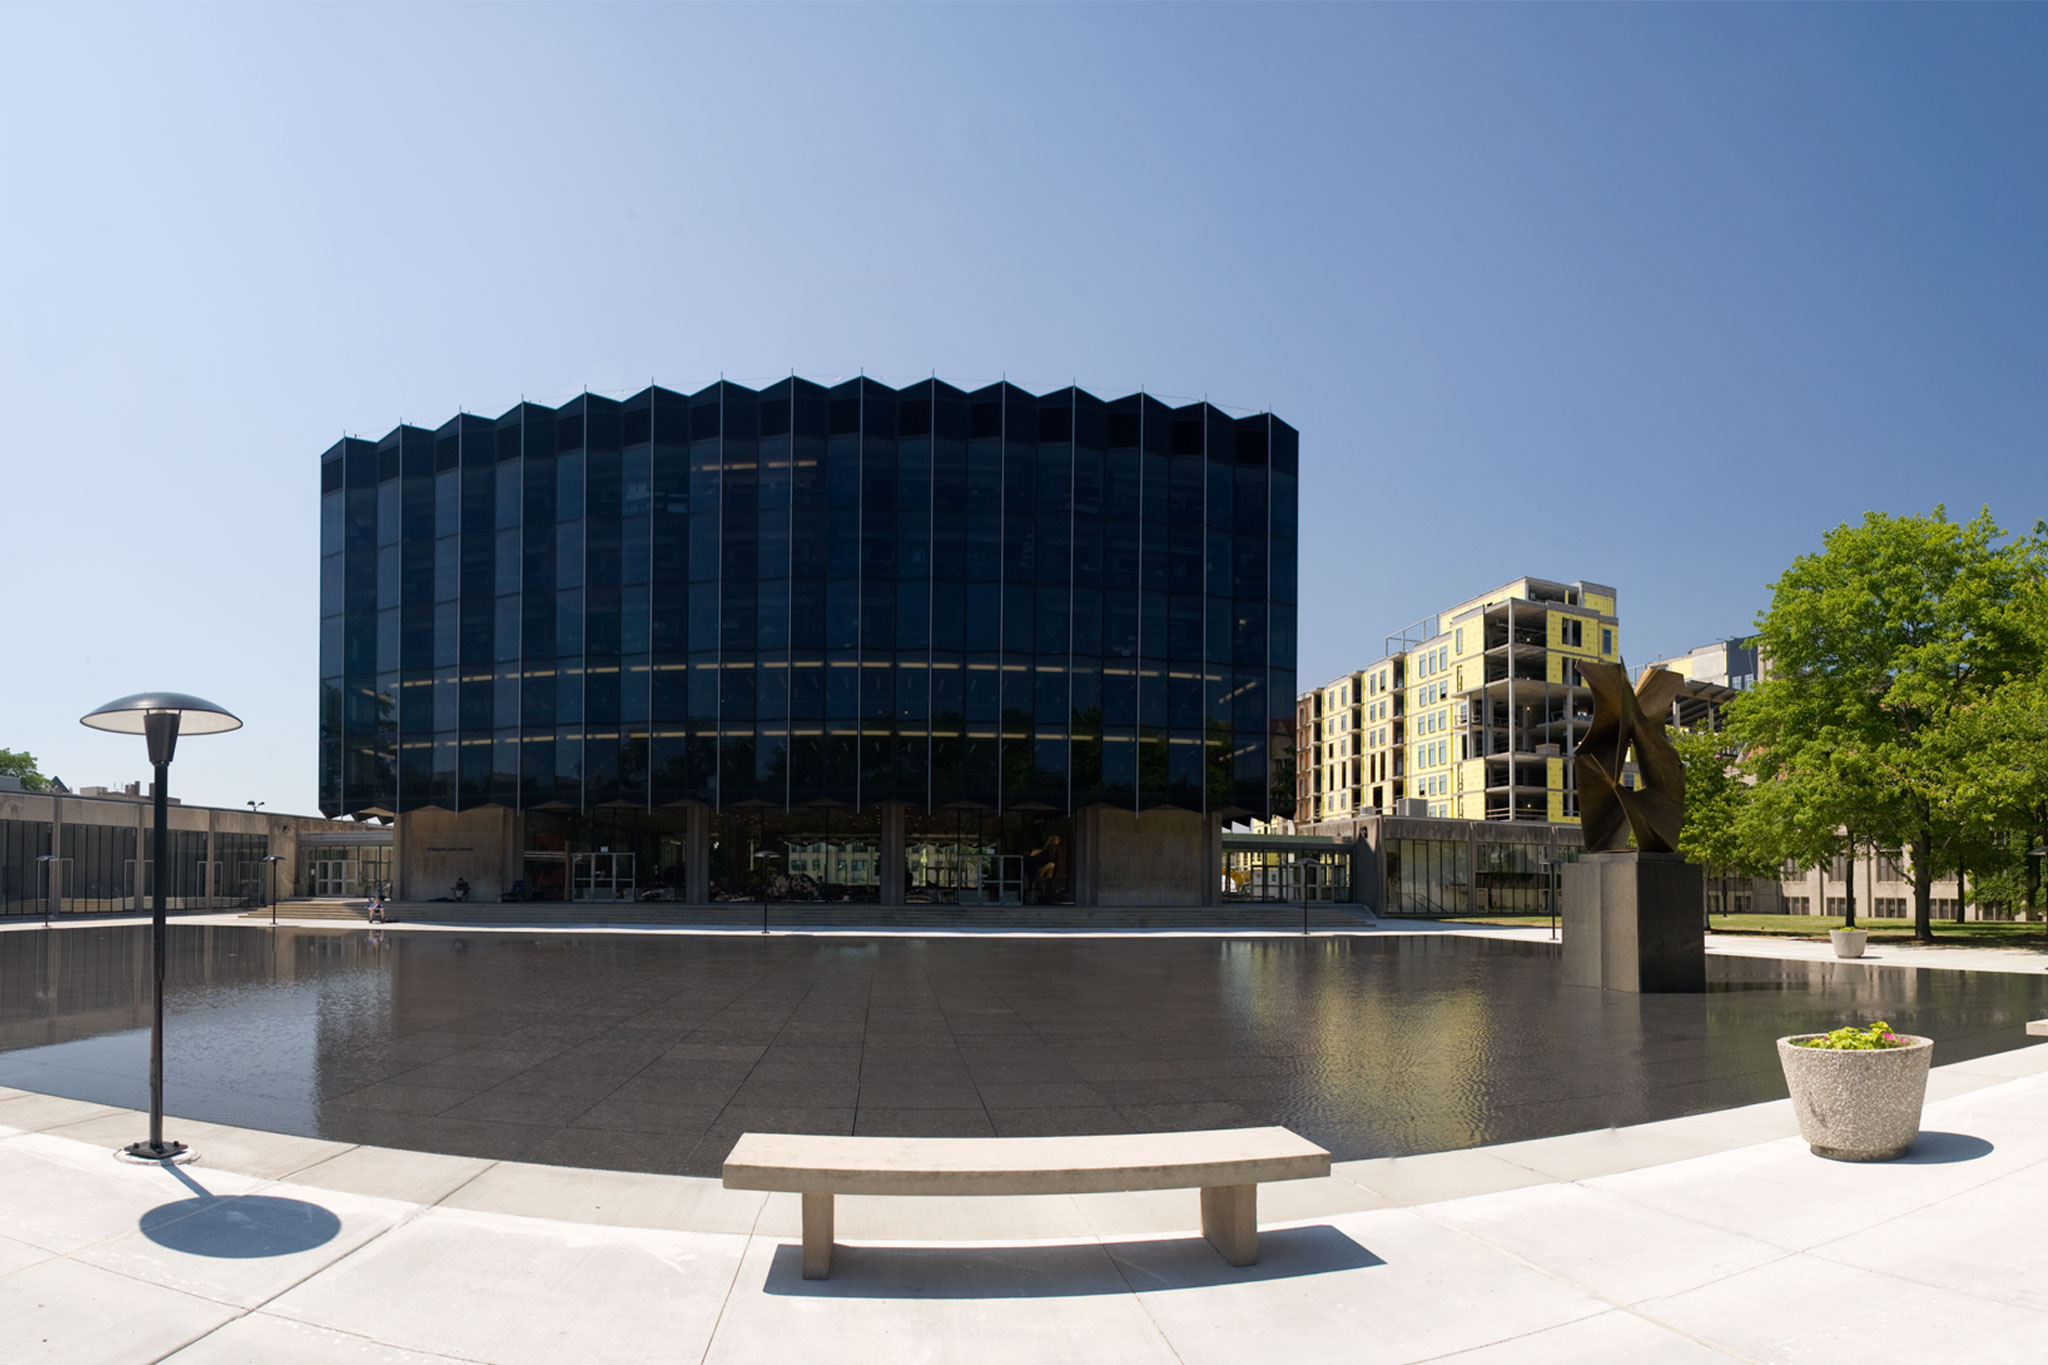 University of chicago law library reflecting pool - University of chicago swimming pool ...